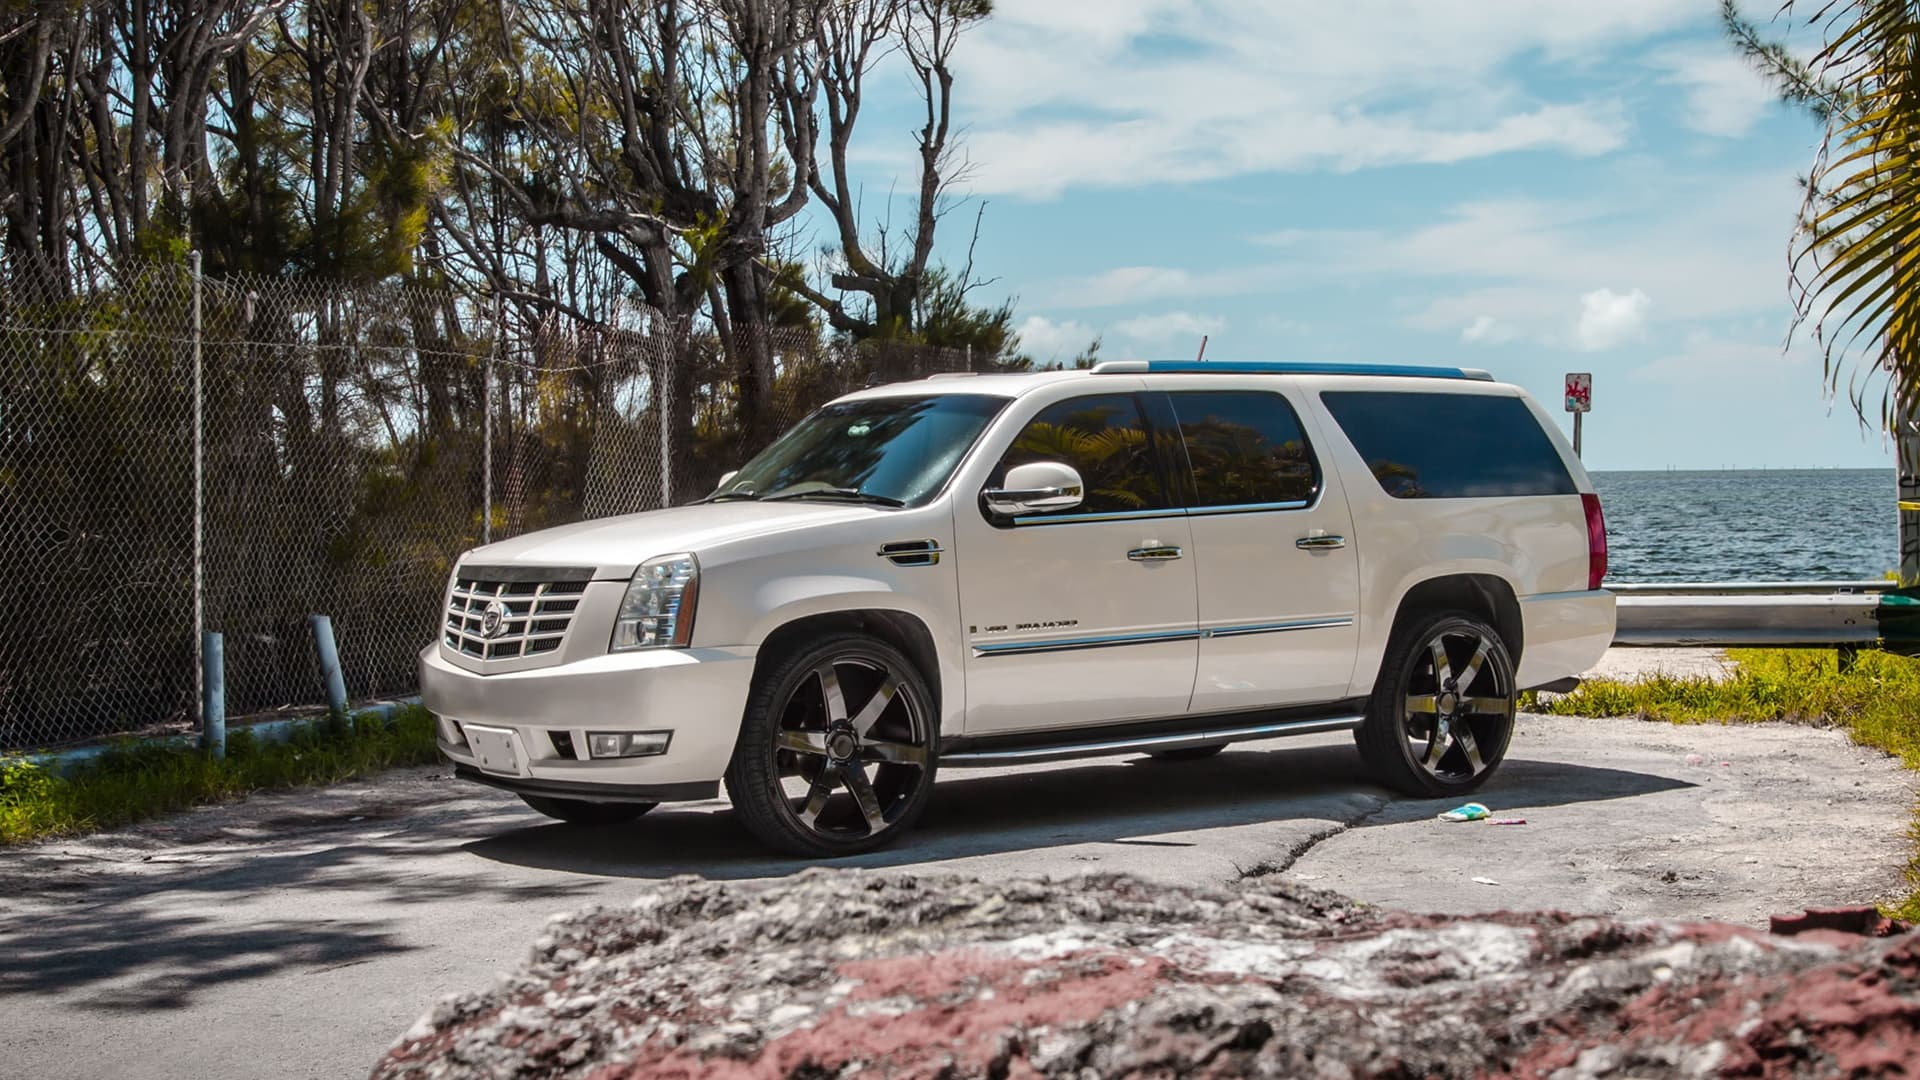 Cadillac escalade CW-6 HD photo